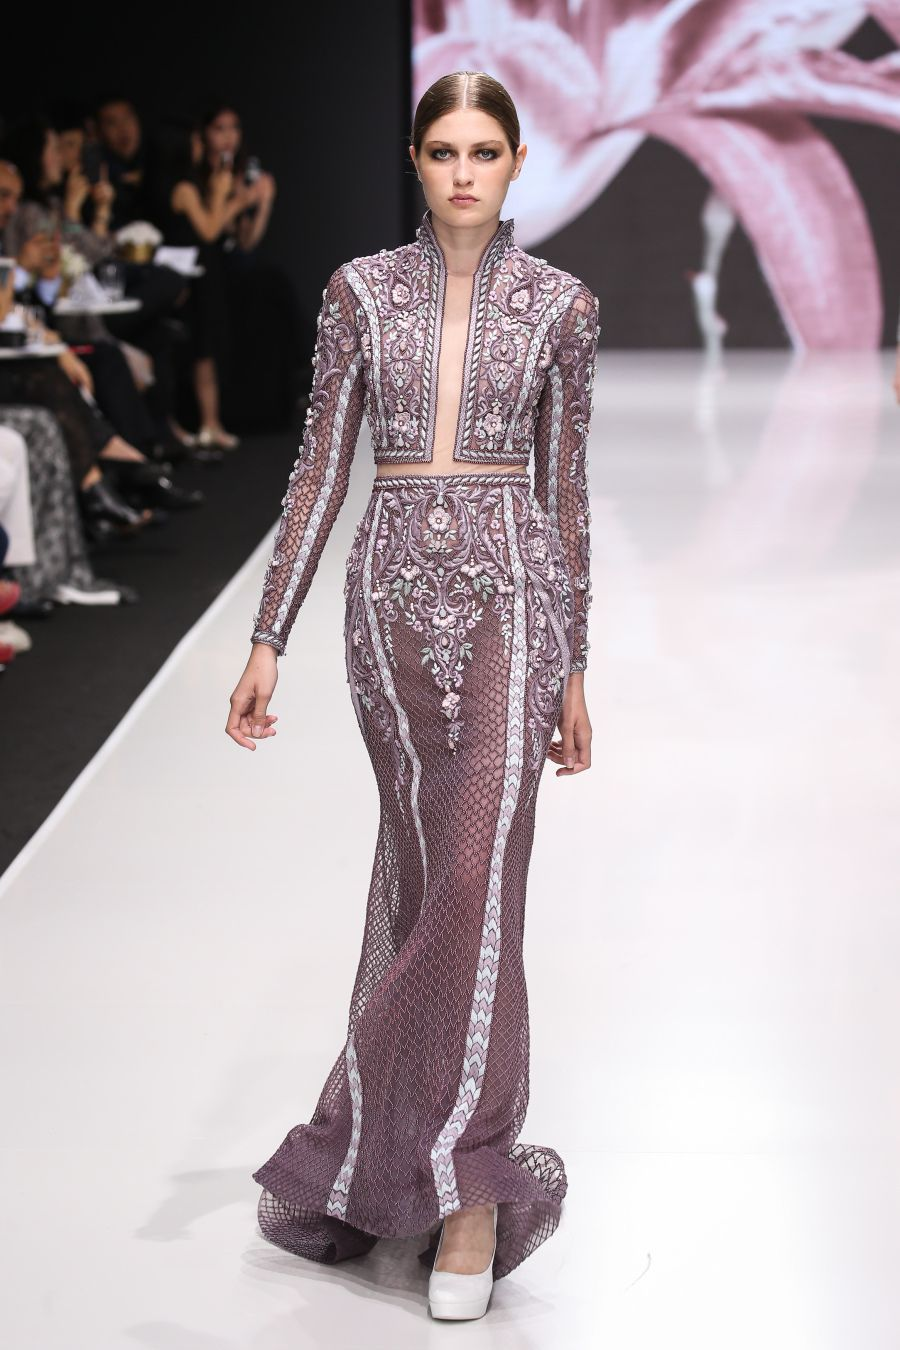 All the Looks from Haute Couture Fashion Week We Want In Our Closest ... 49ddaae866178